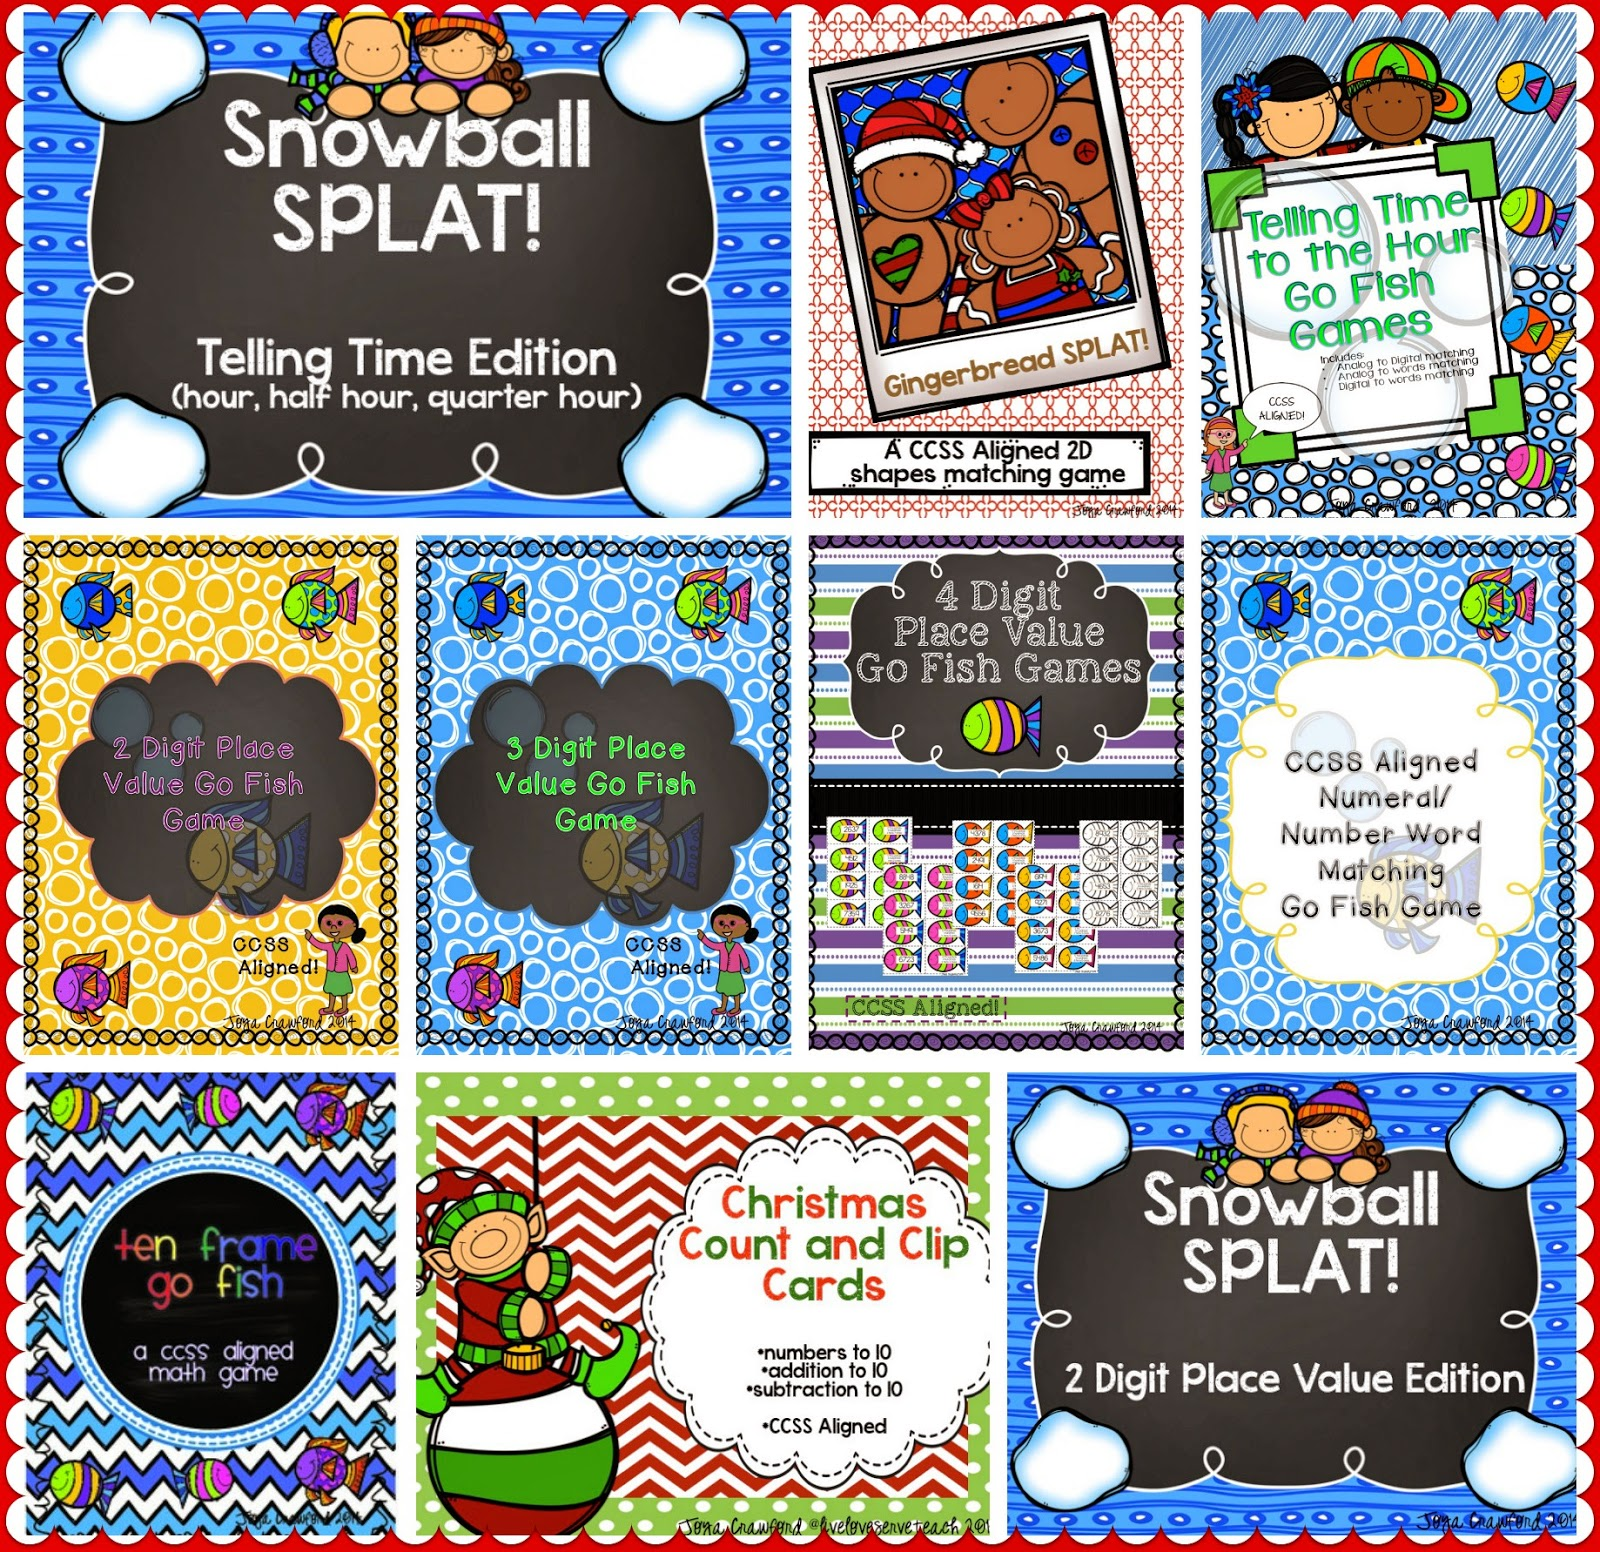 http://www.teacherspayteachers.com/Store/Joya-Crawford/PreK-12-Subject-Area/Math